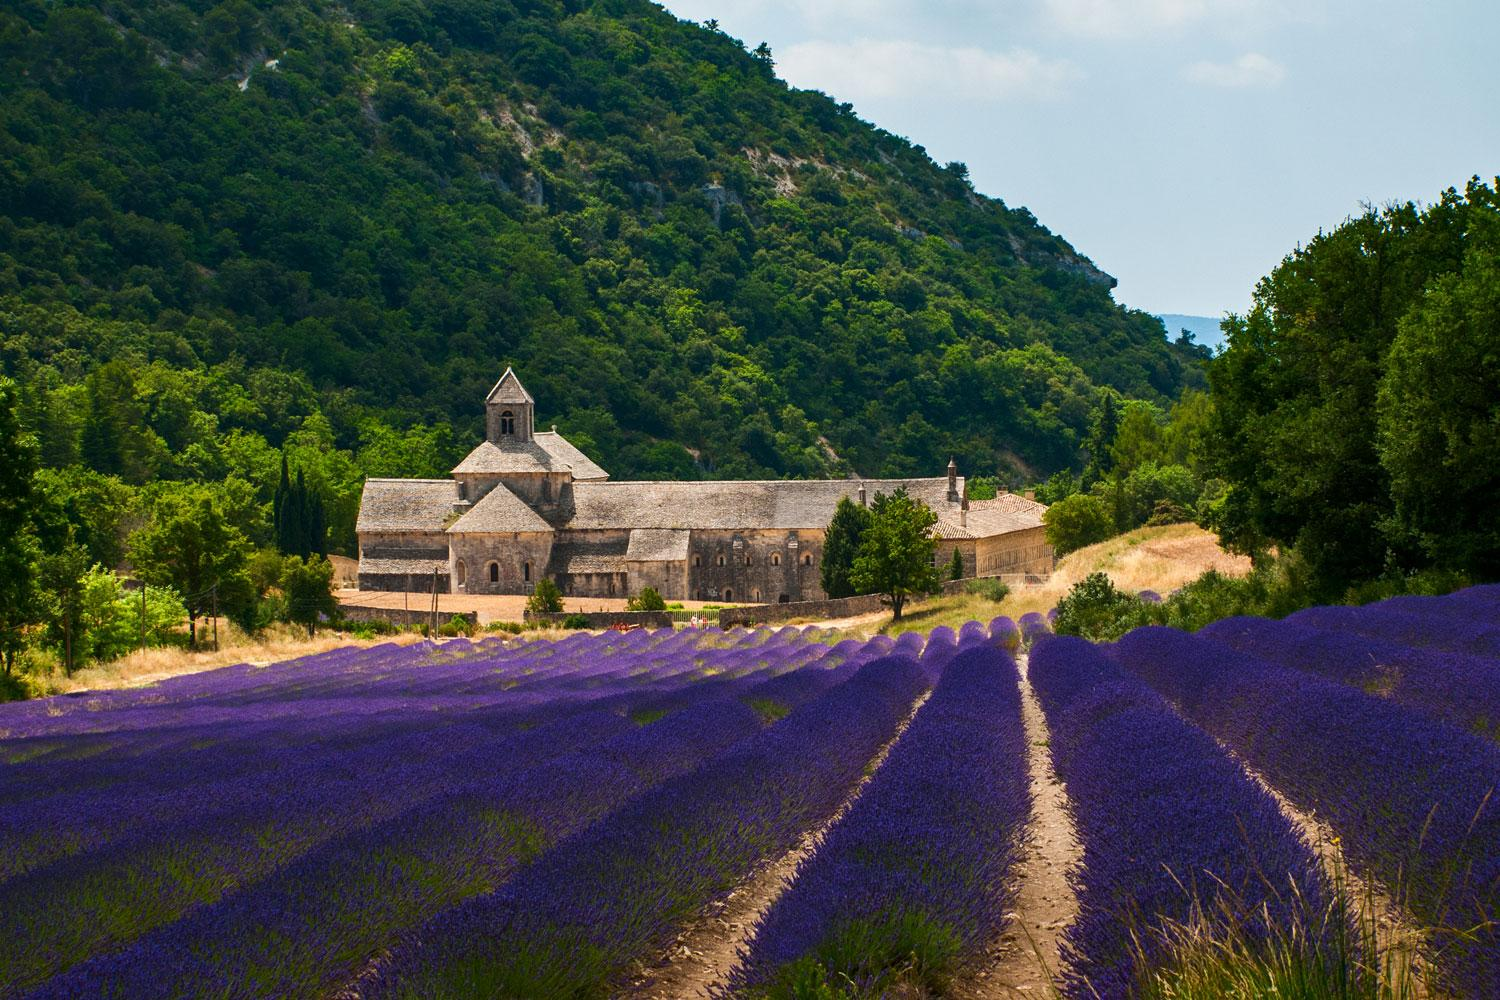 Meditative Abbey of Senanque amongst the blooming Lavender